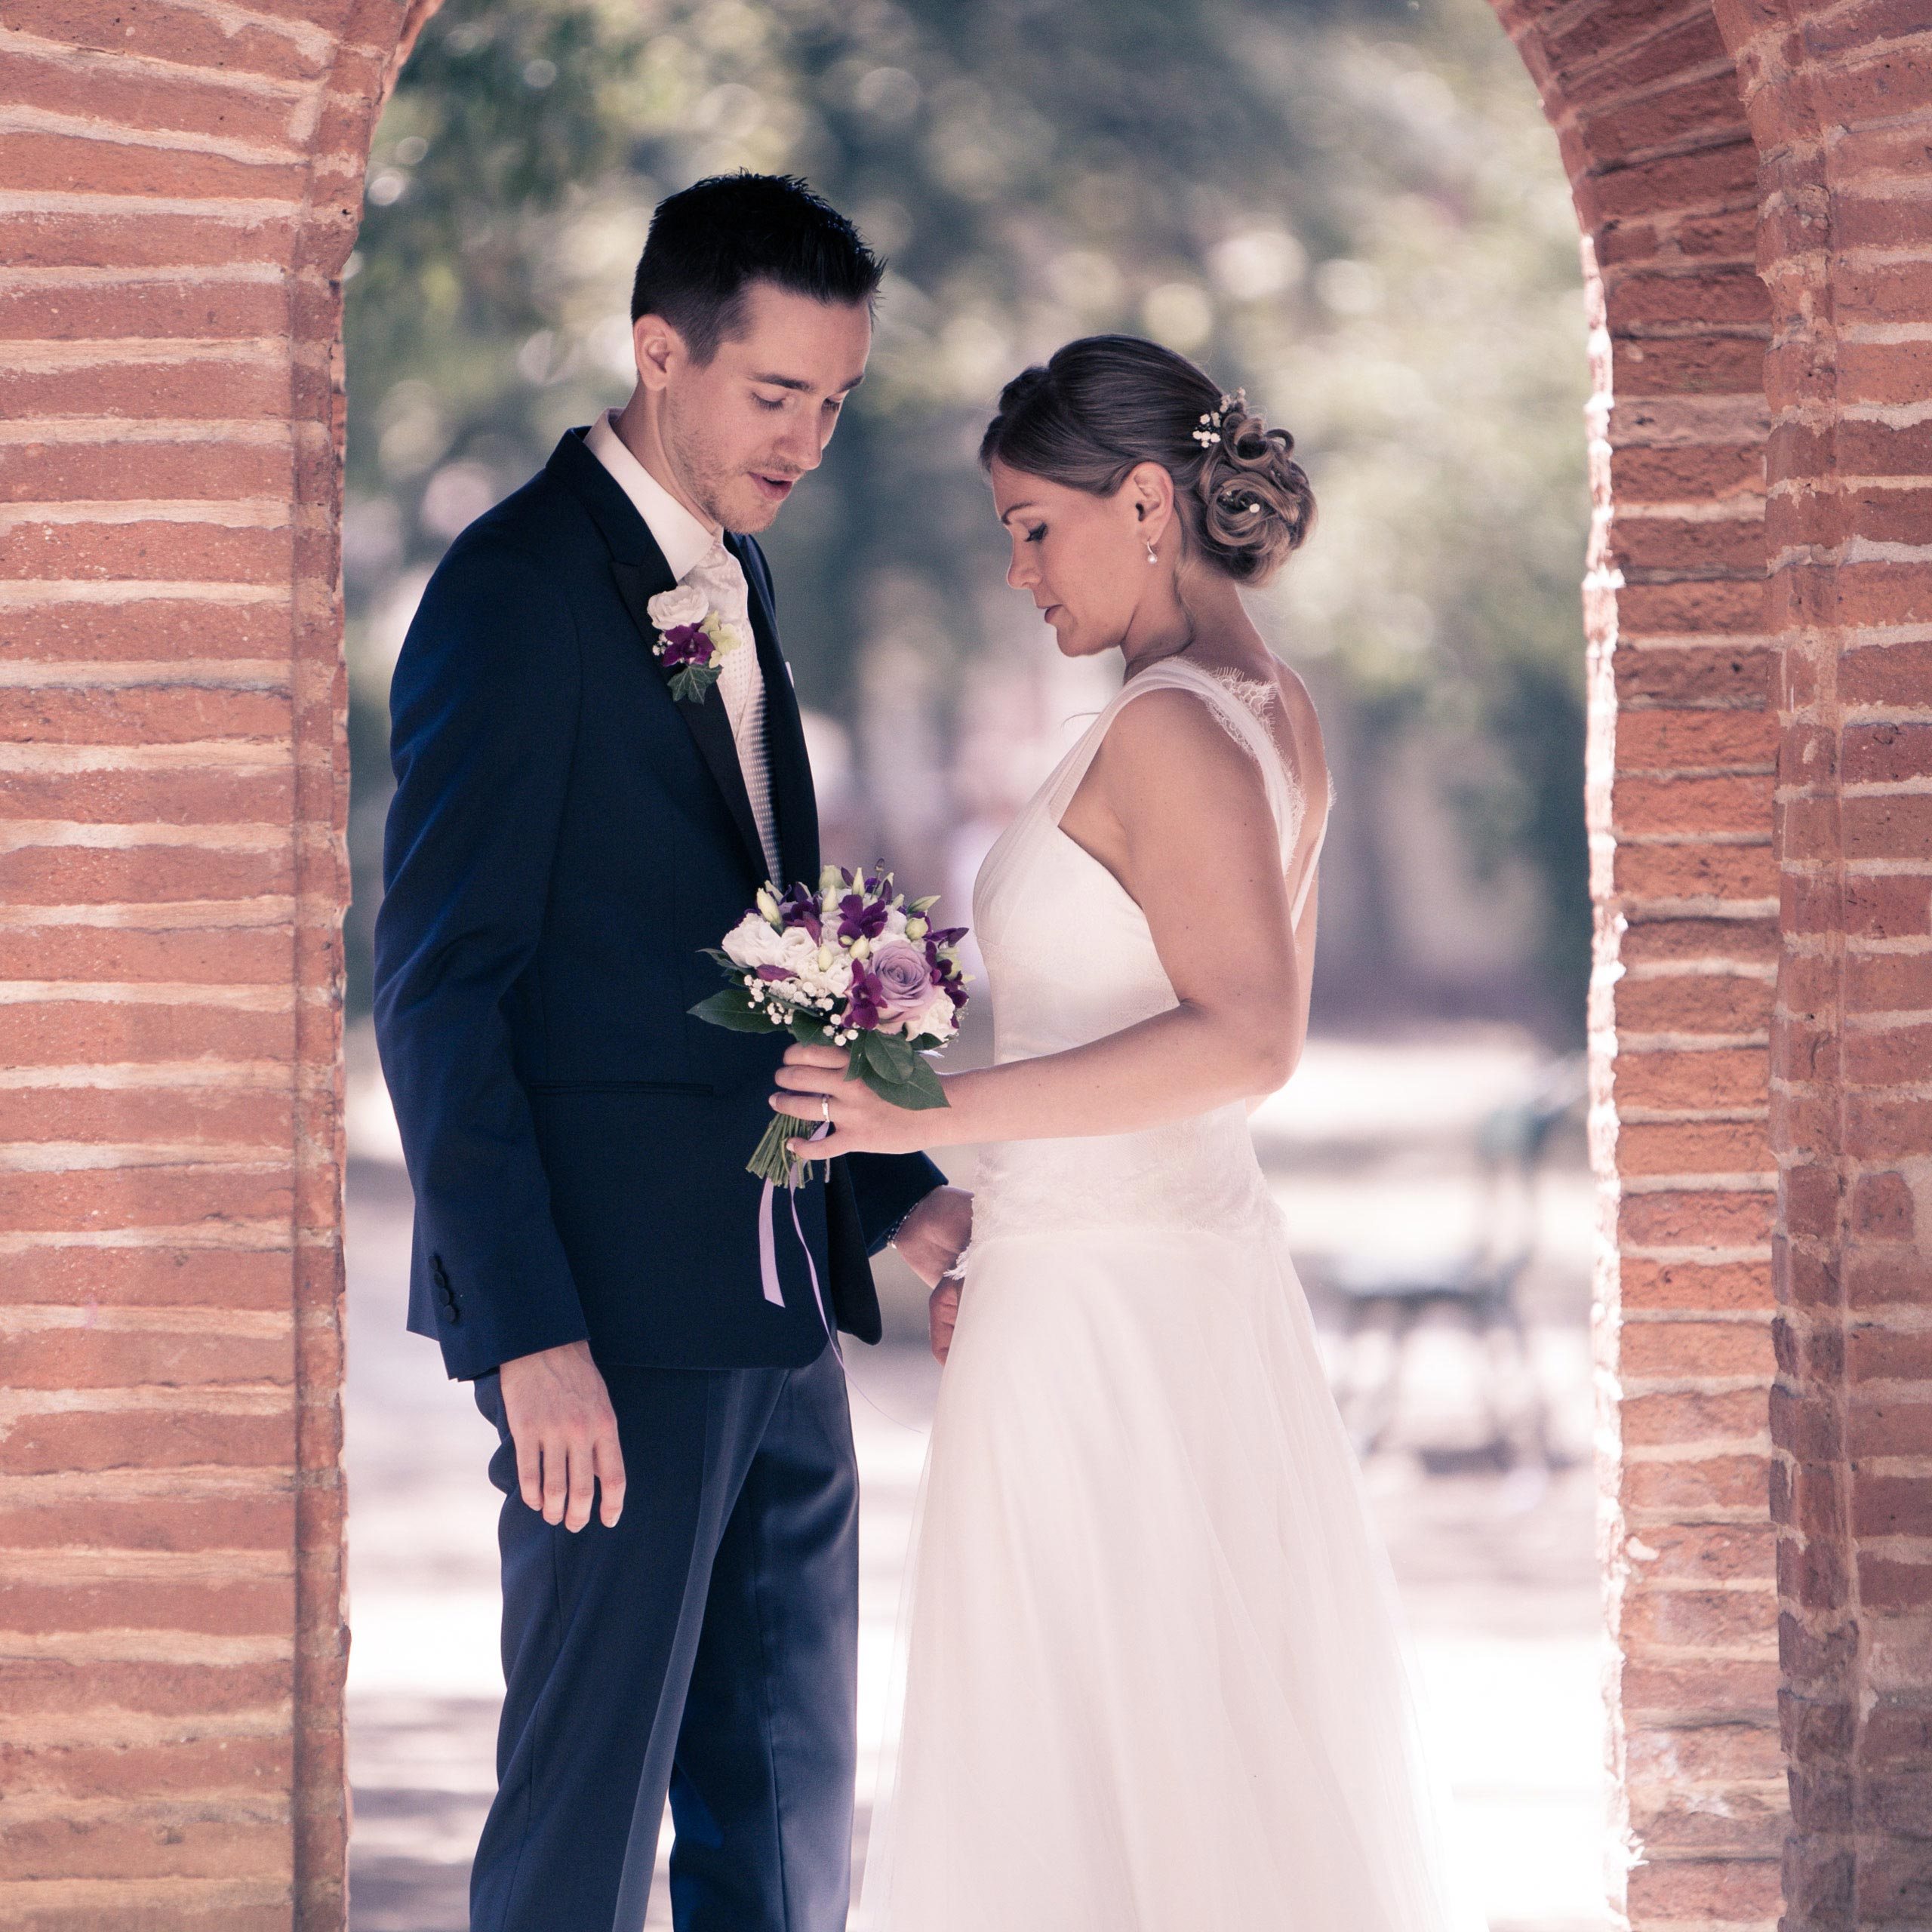 Mariage Toulouse Aveyron Video